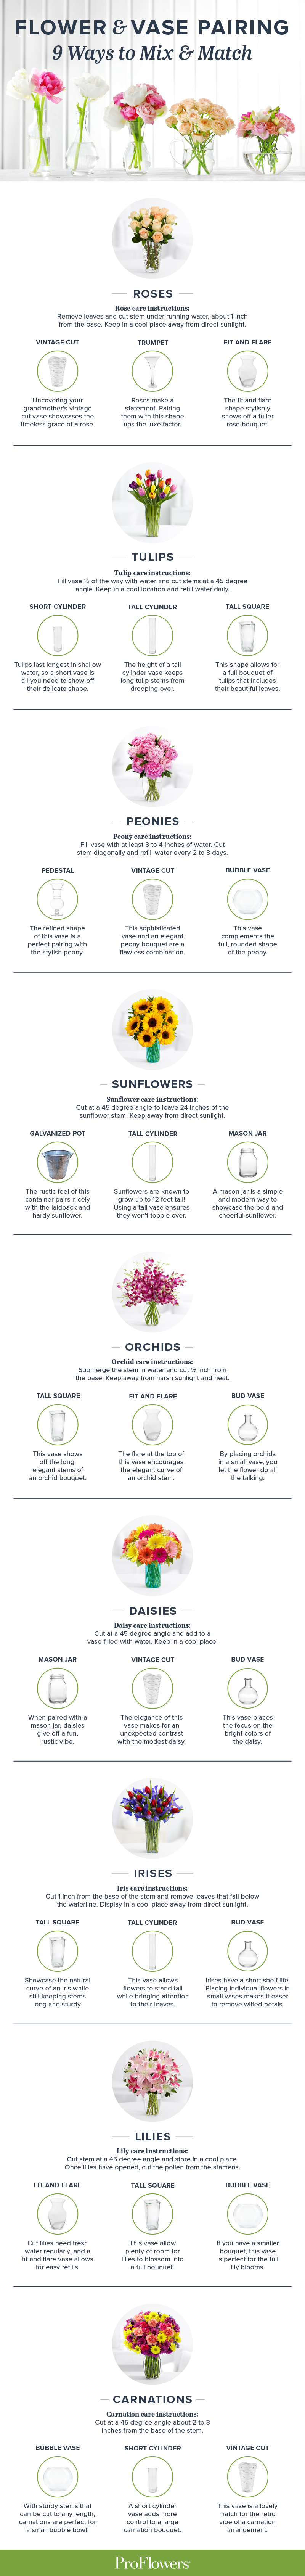 How to pair flower vases 9 ways to mix match proflowers how to pair flower vases 9 ways to mix match proflowers reviewsmspy